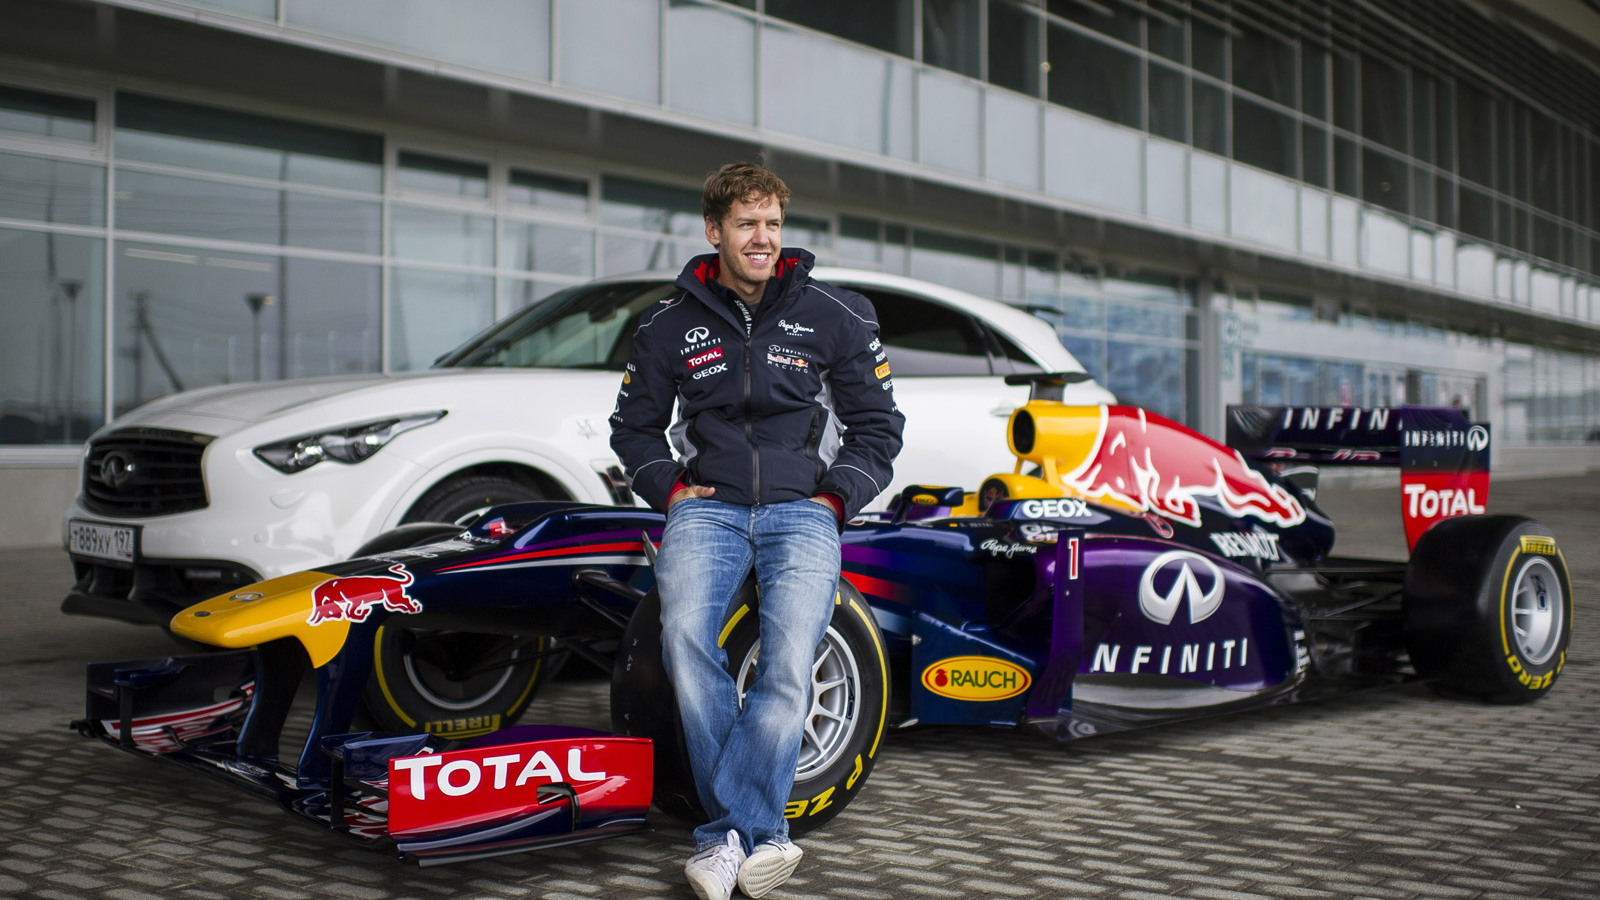 Sebastian Vettel at the Sochi Olympic Park Circuit in Sochi, Russia